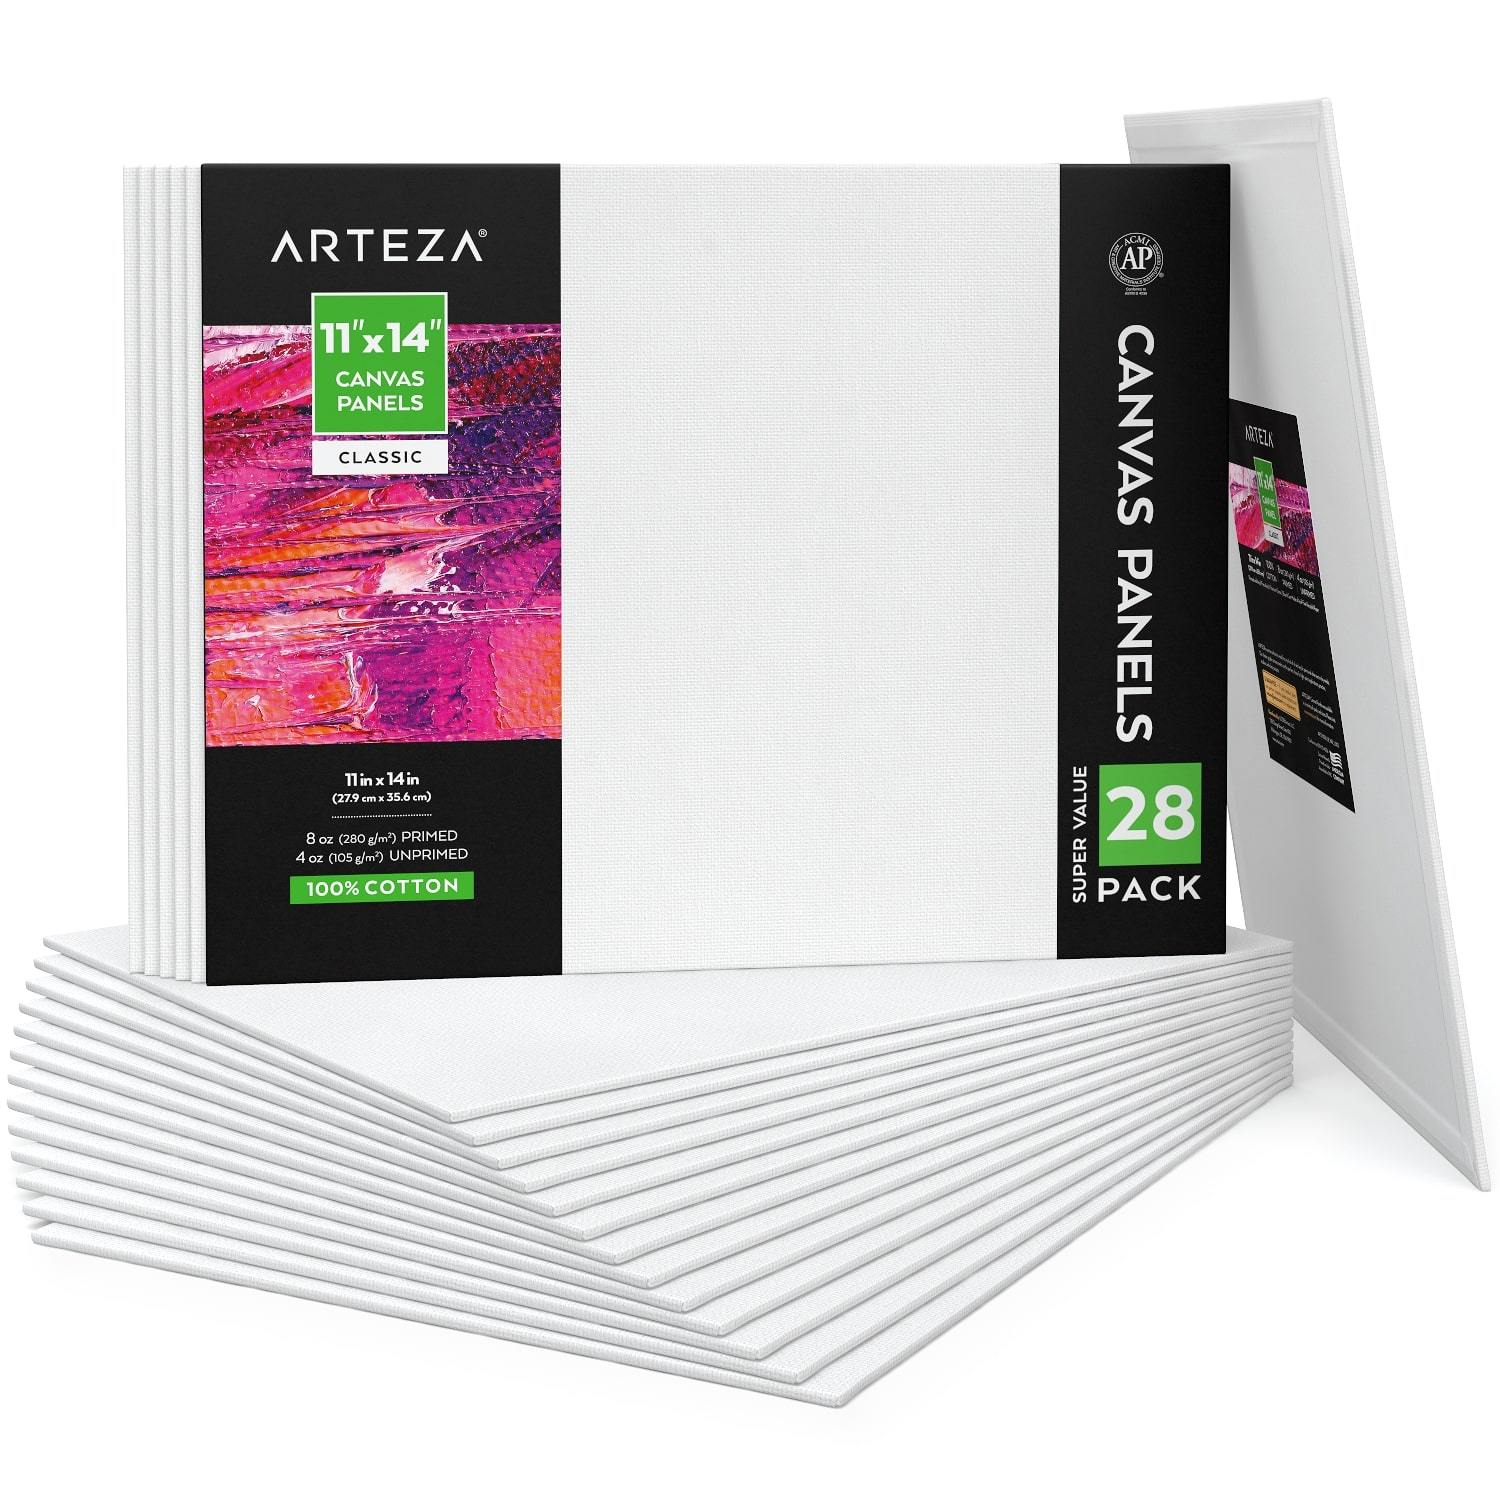 Le Naturel Painting Canvas Panel Boards 6x8 Inch Super Value Pack for Oil /& Acrylic Paint 12 Pack